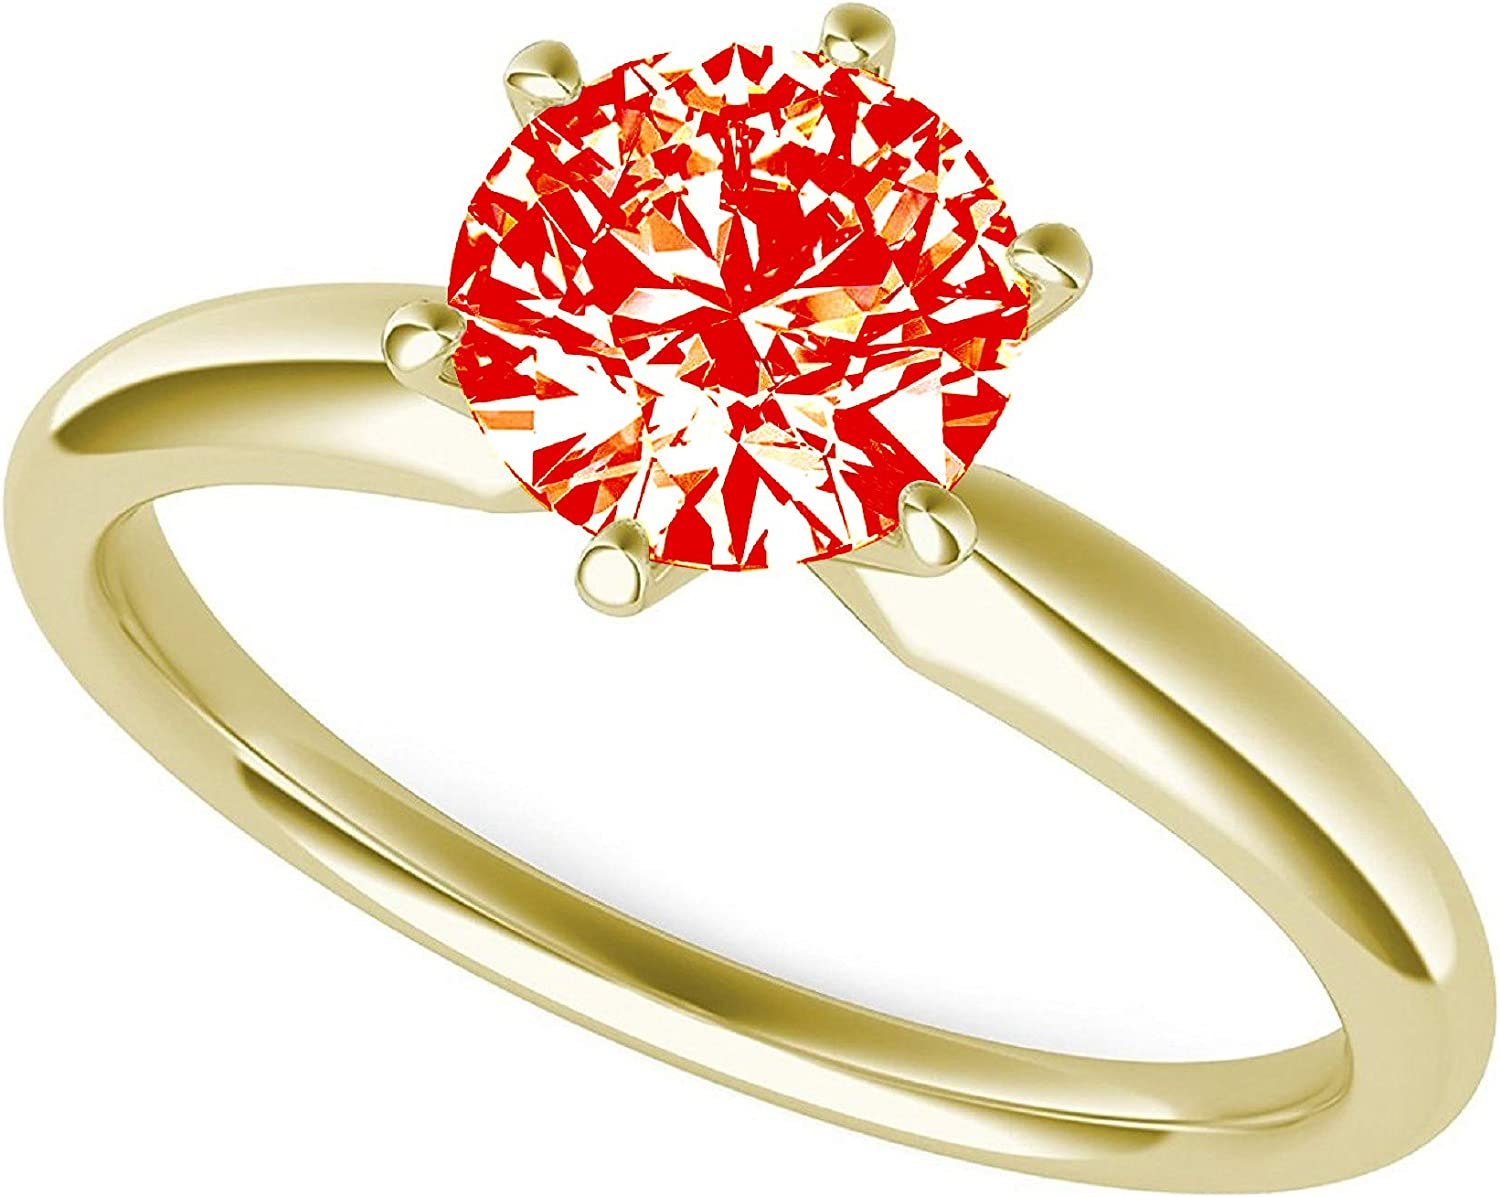 2.0 ct Brilliant Round Cut Solitaire Hot Red Simulated Diamond CZ Ideal VVS1 D 6-Prong Engagement Wedding Bridal Promise Anniversary Ring in Solid Real 14k yellow Gold for Women